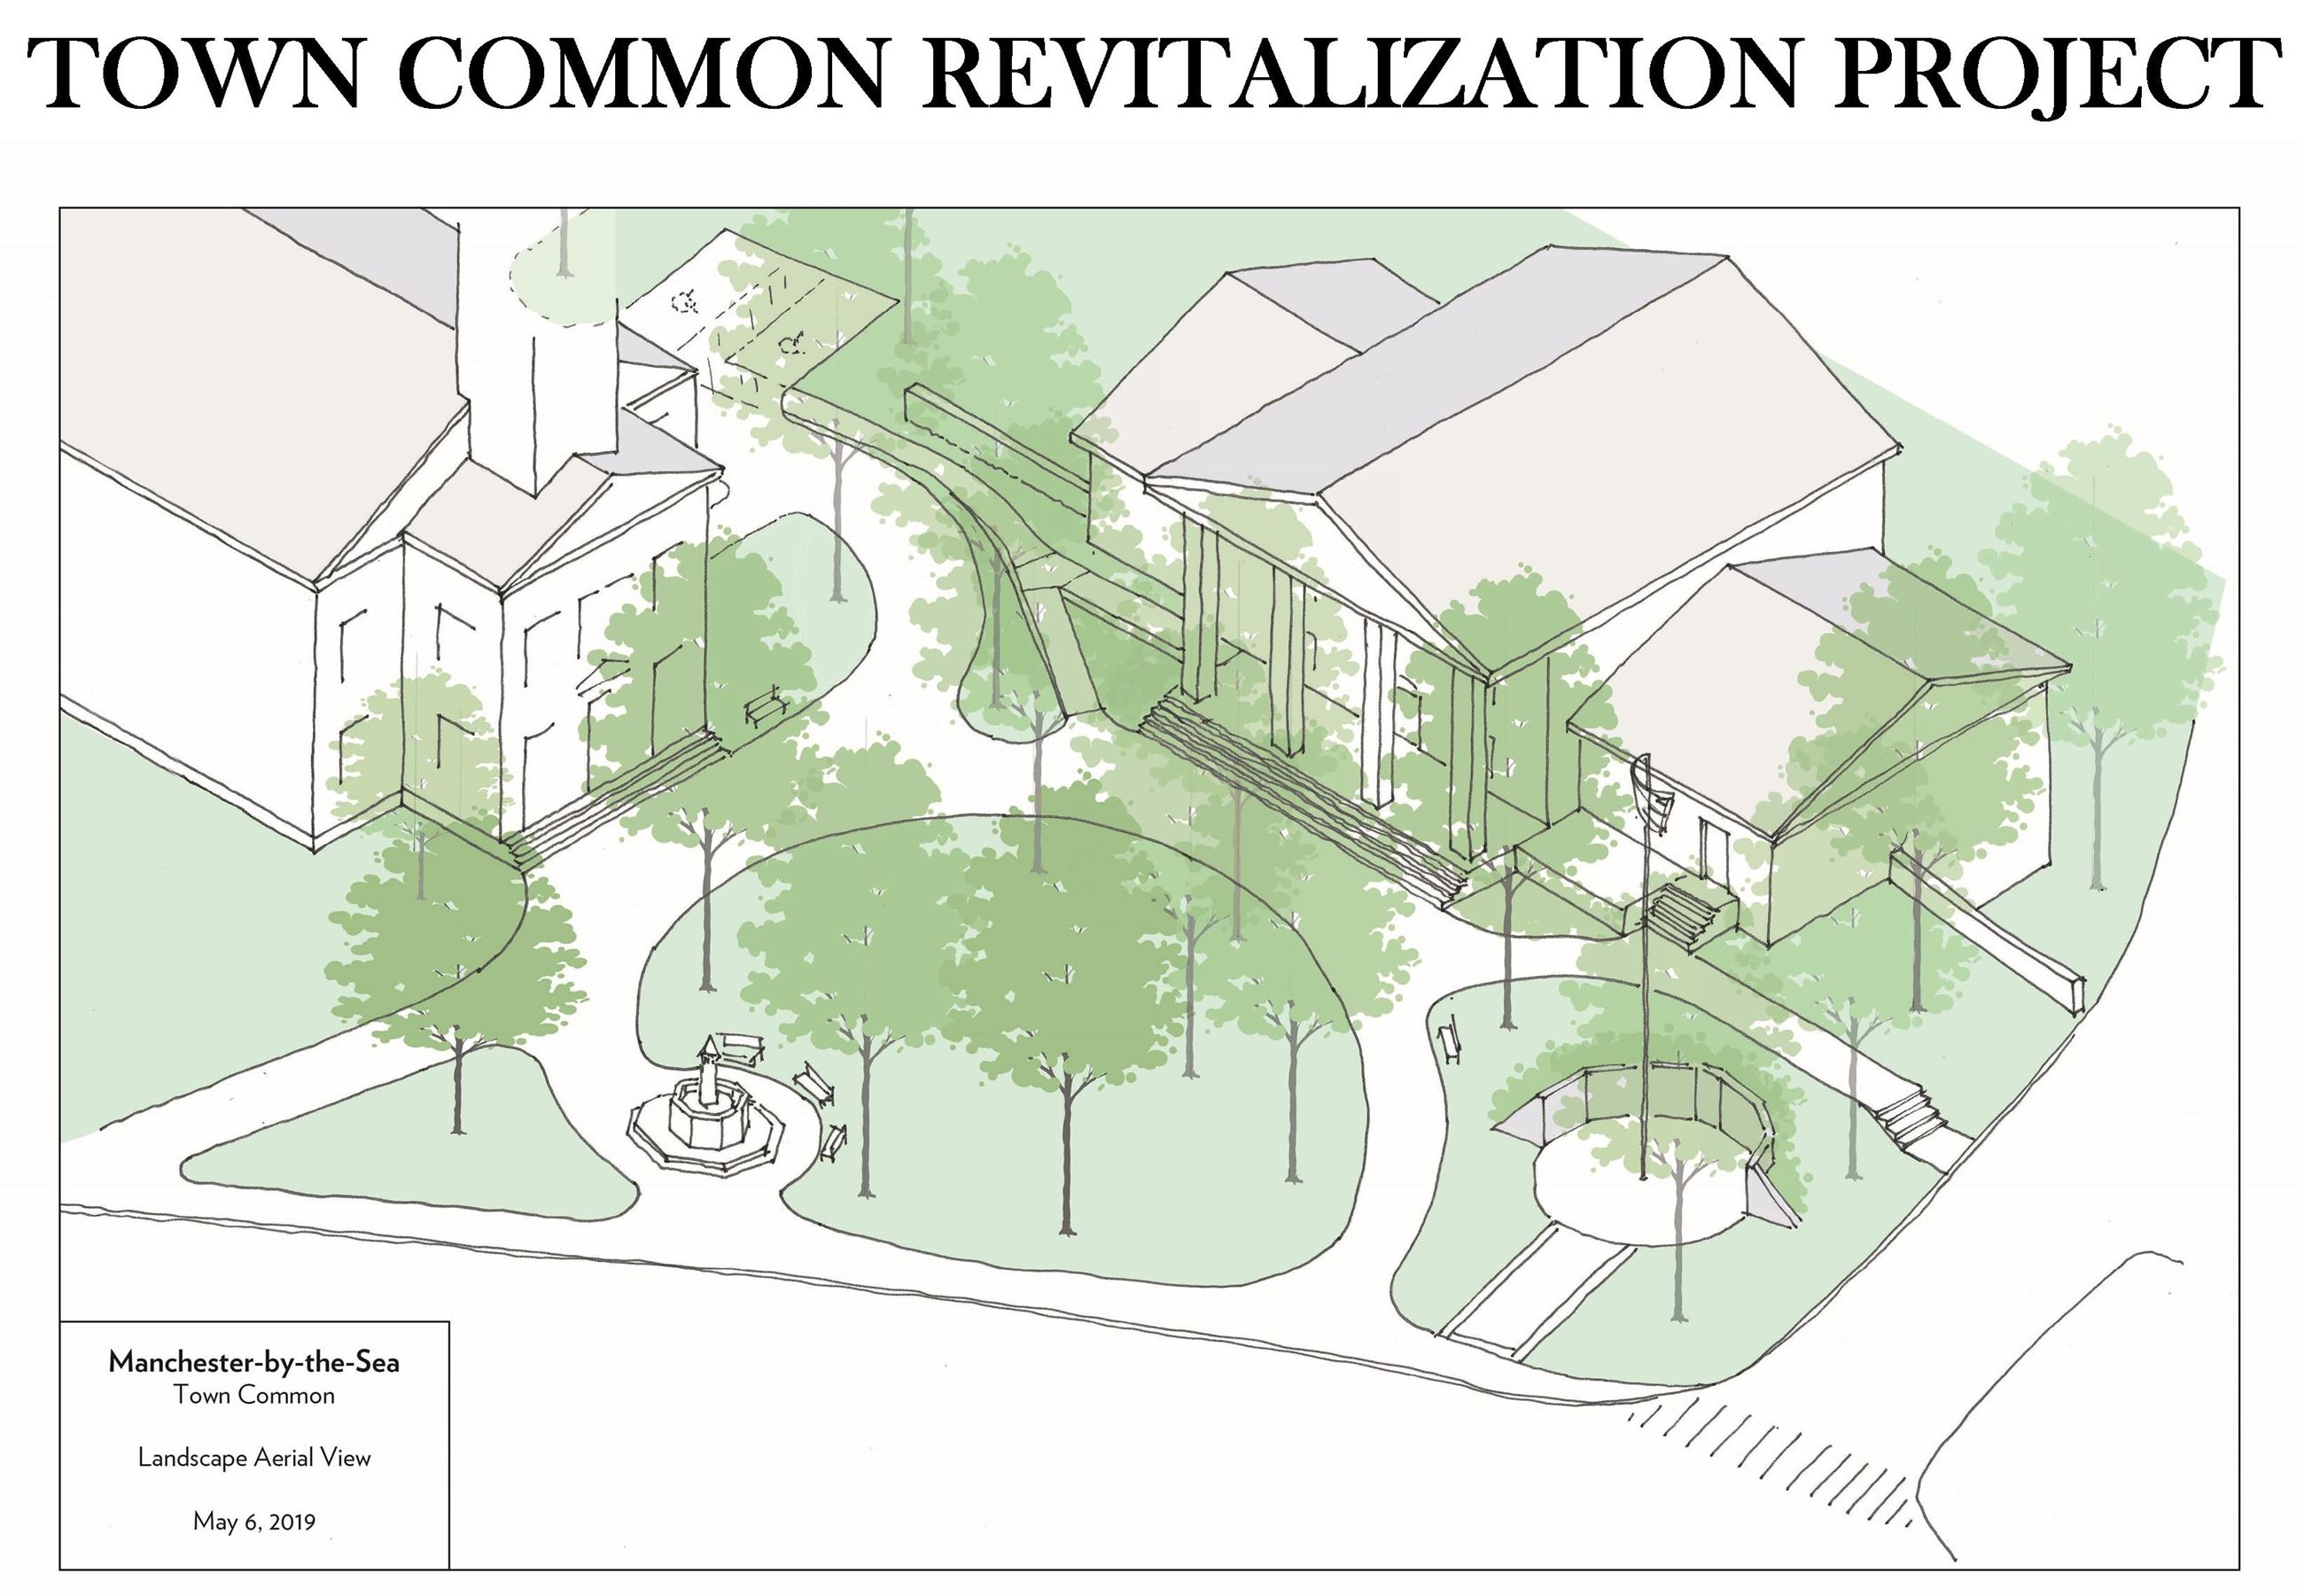 Town Common Revitalization